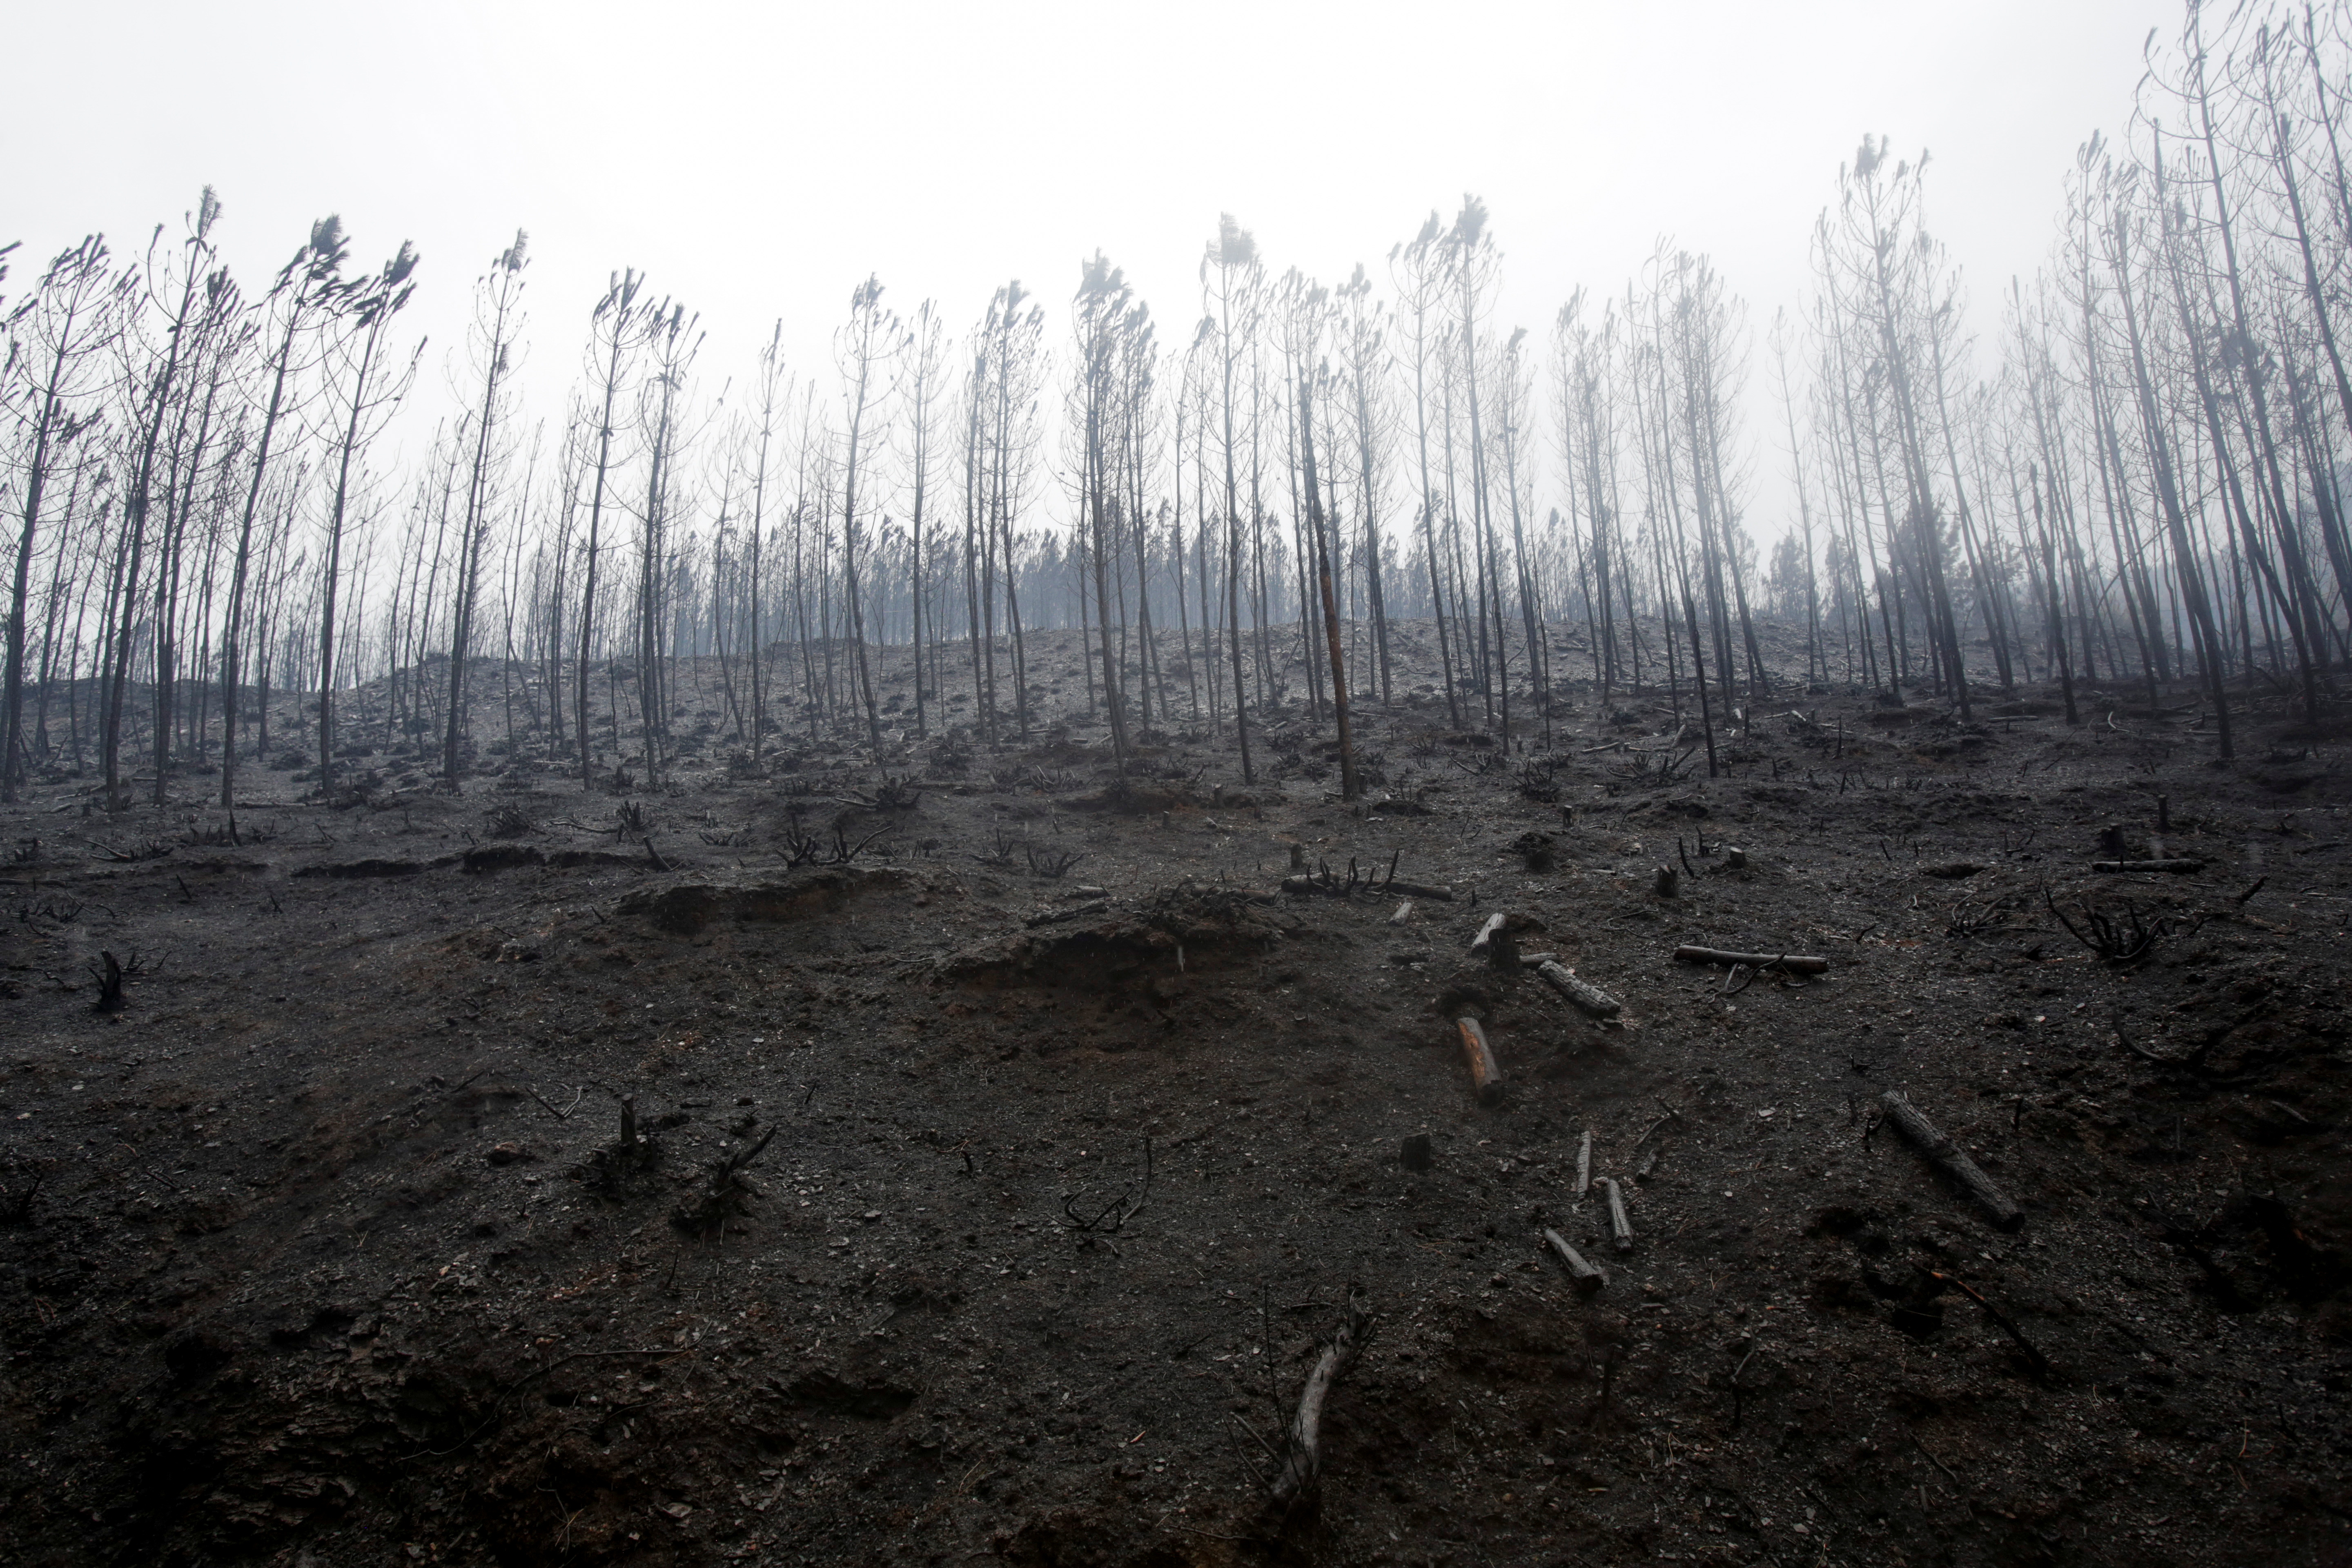 Burnt trees are seen after a wildfire near Ribas de Sil, northwestern Spain, September 7, 2021. REUTERS/Miguel Vidal